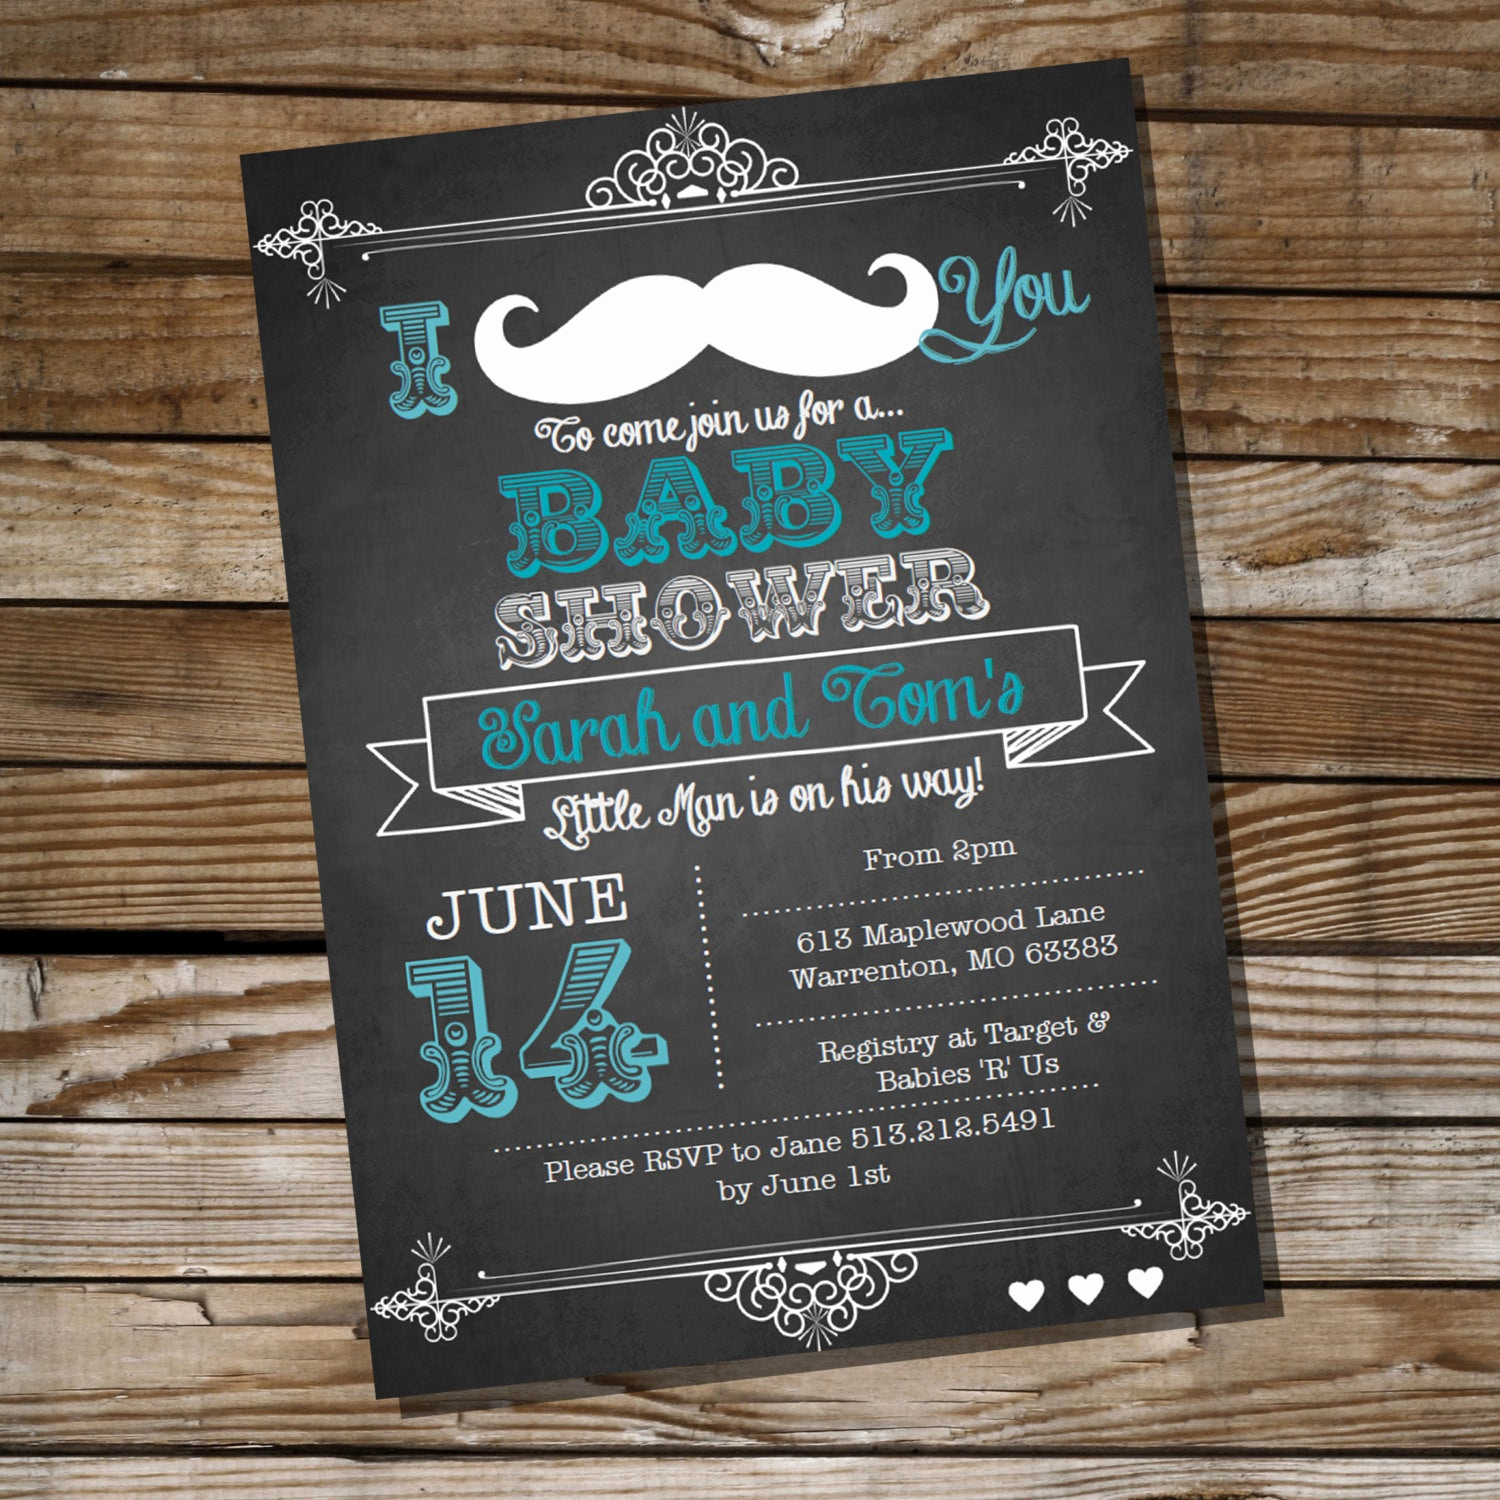 Mustache Baby Shower Invitation Elegant Mustache Baby Shower Invitation for A Boy Instantly